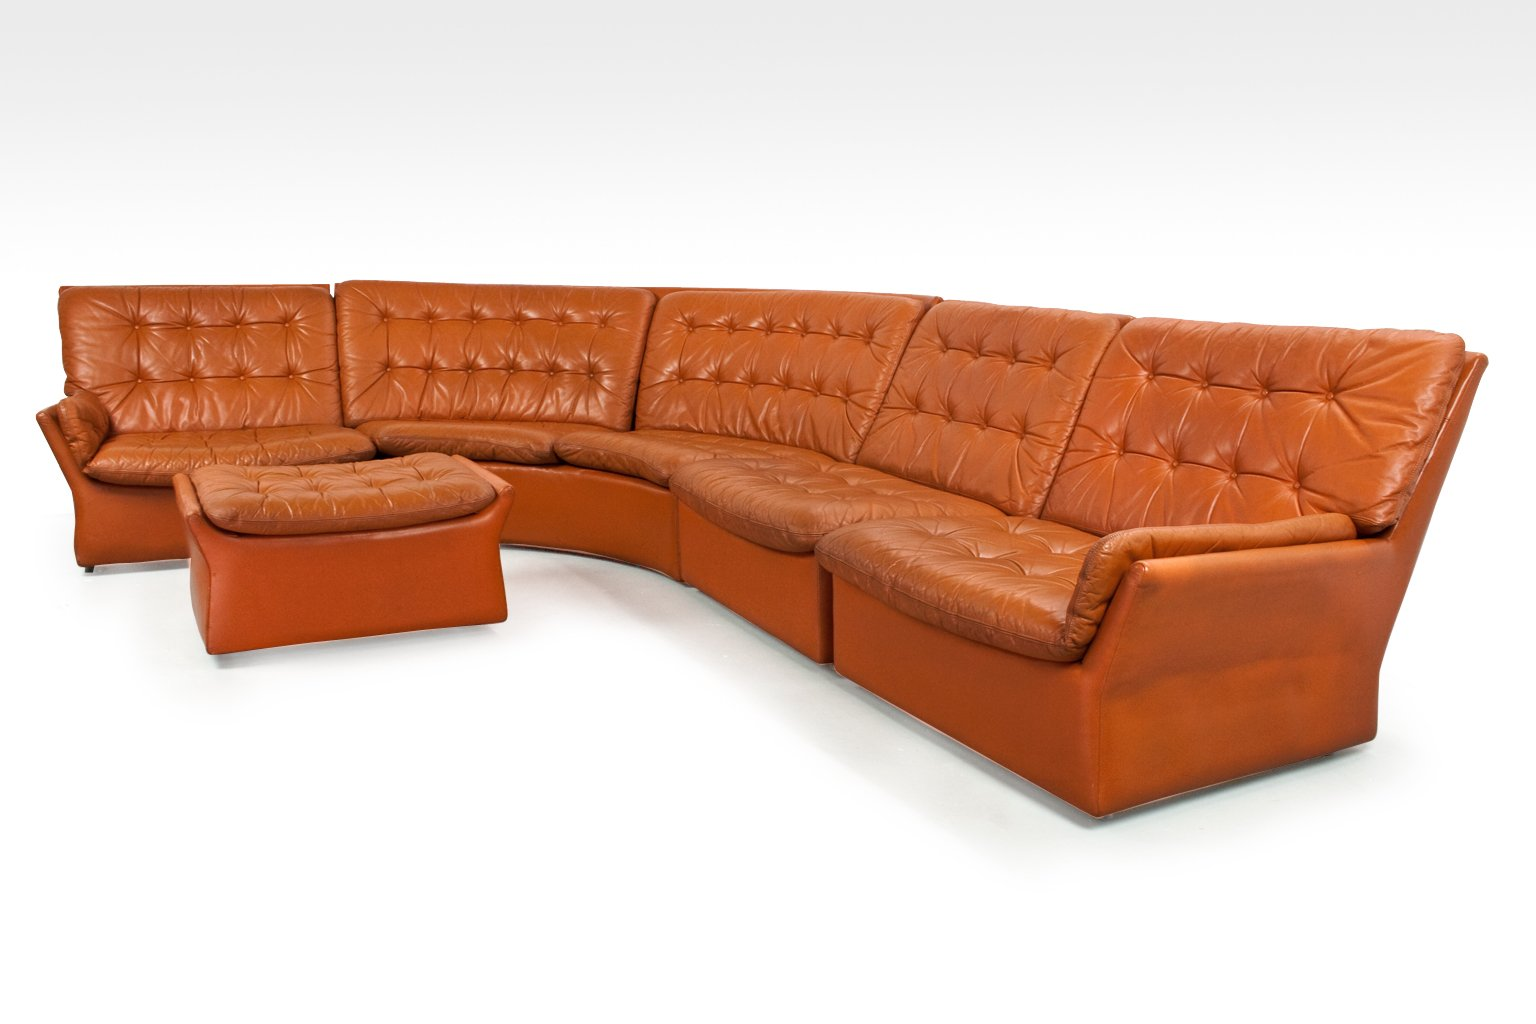 Mid Century Sectional Modular Camel Brown Coloured Leather Sofa 1960s